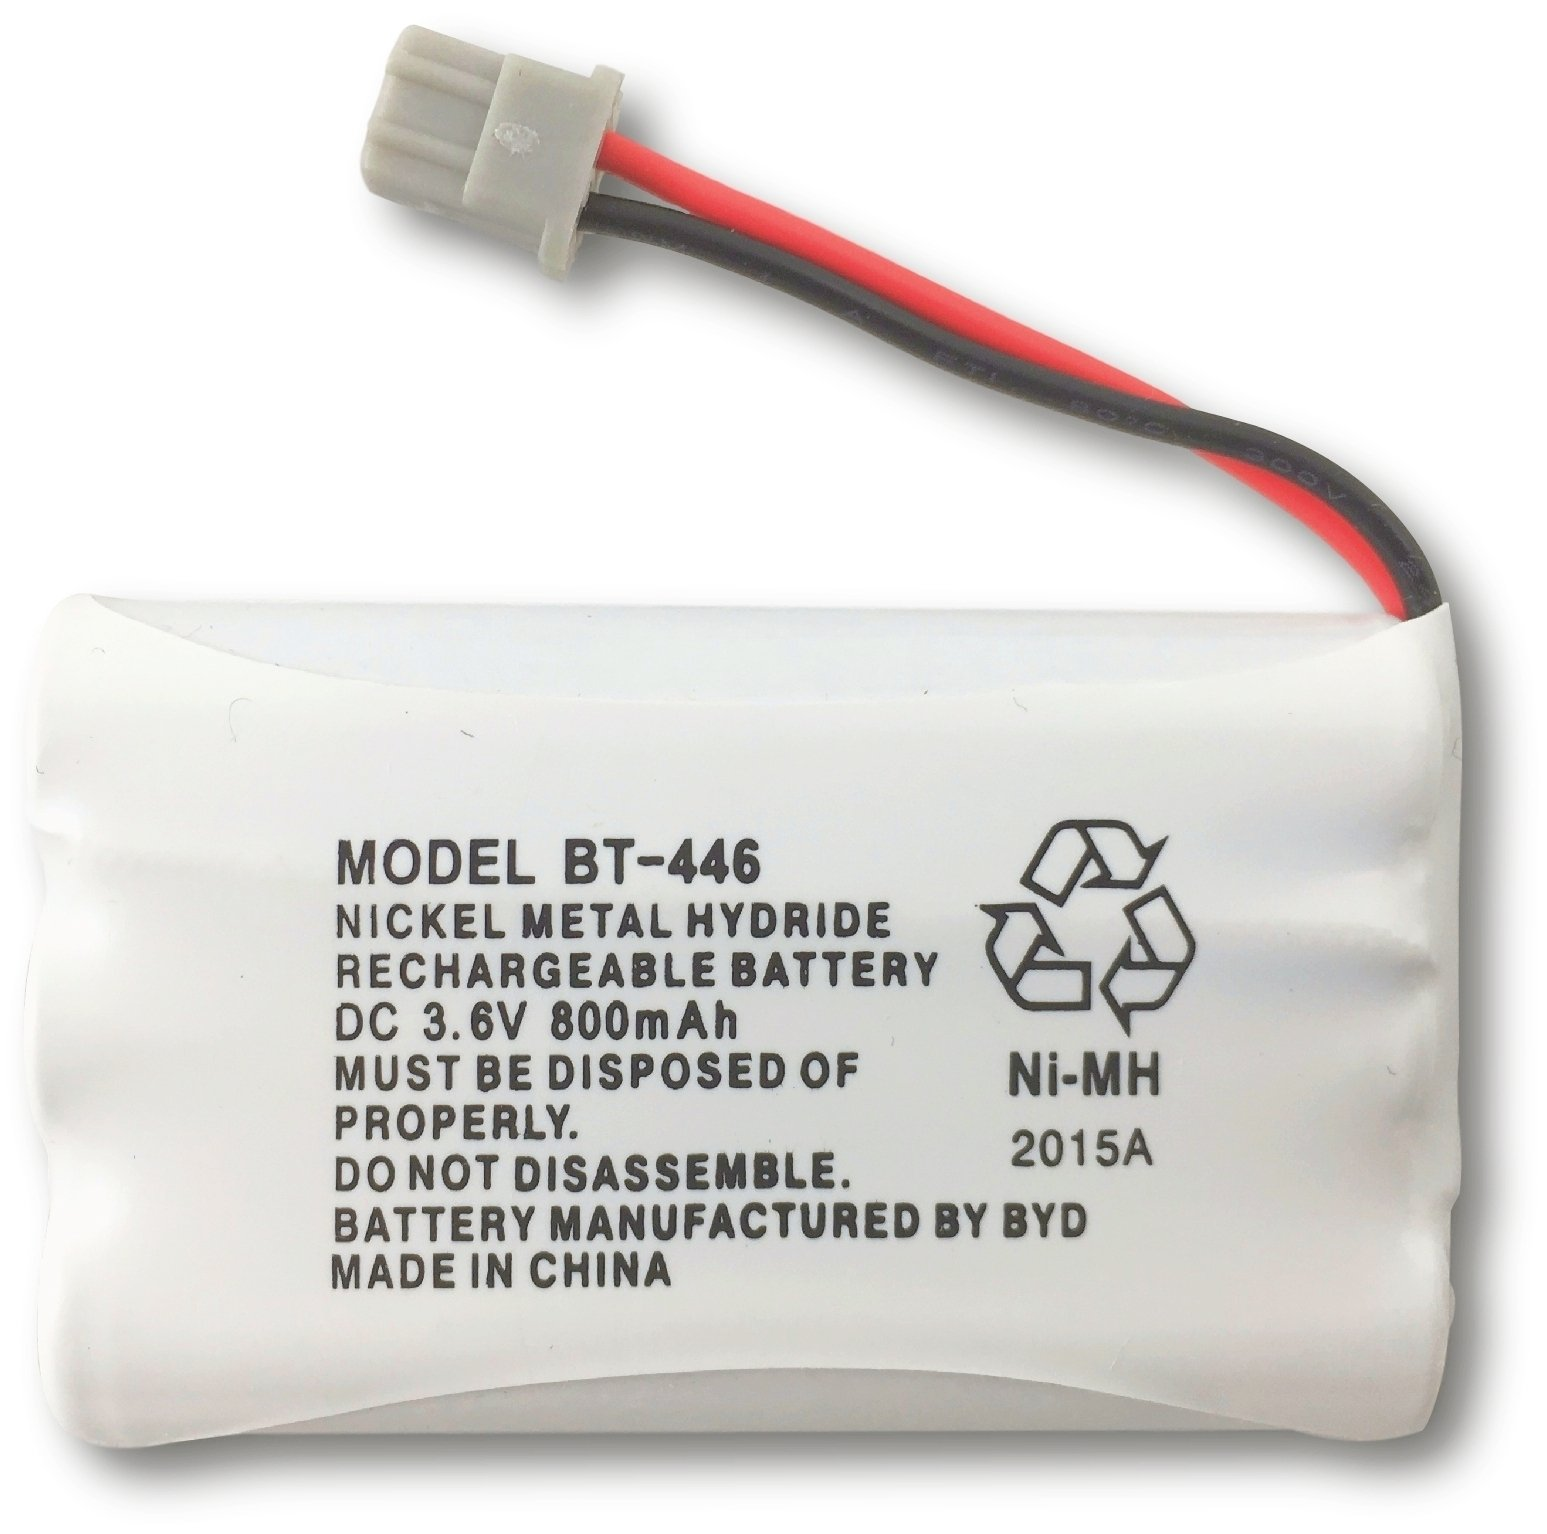 Uniden BT-446 Nickel Metal Hydride Rechargeable Cordless Phone Battery, DC 3.6V 800mAh, Genuine Uniden, Manufactured by BYD for Uniden